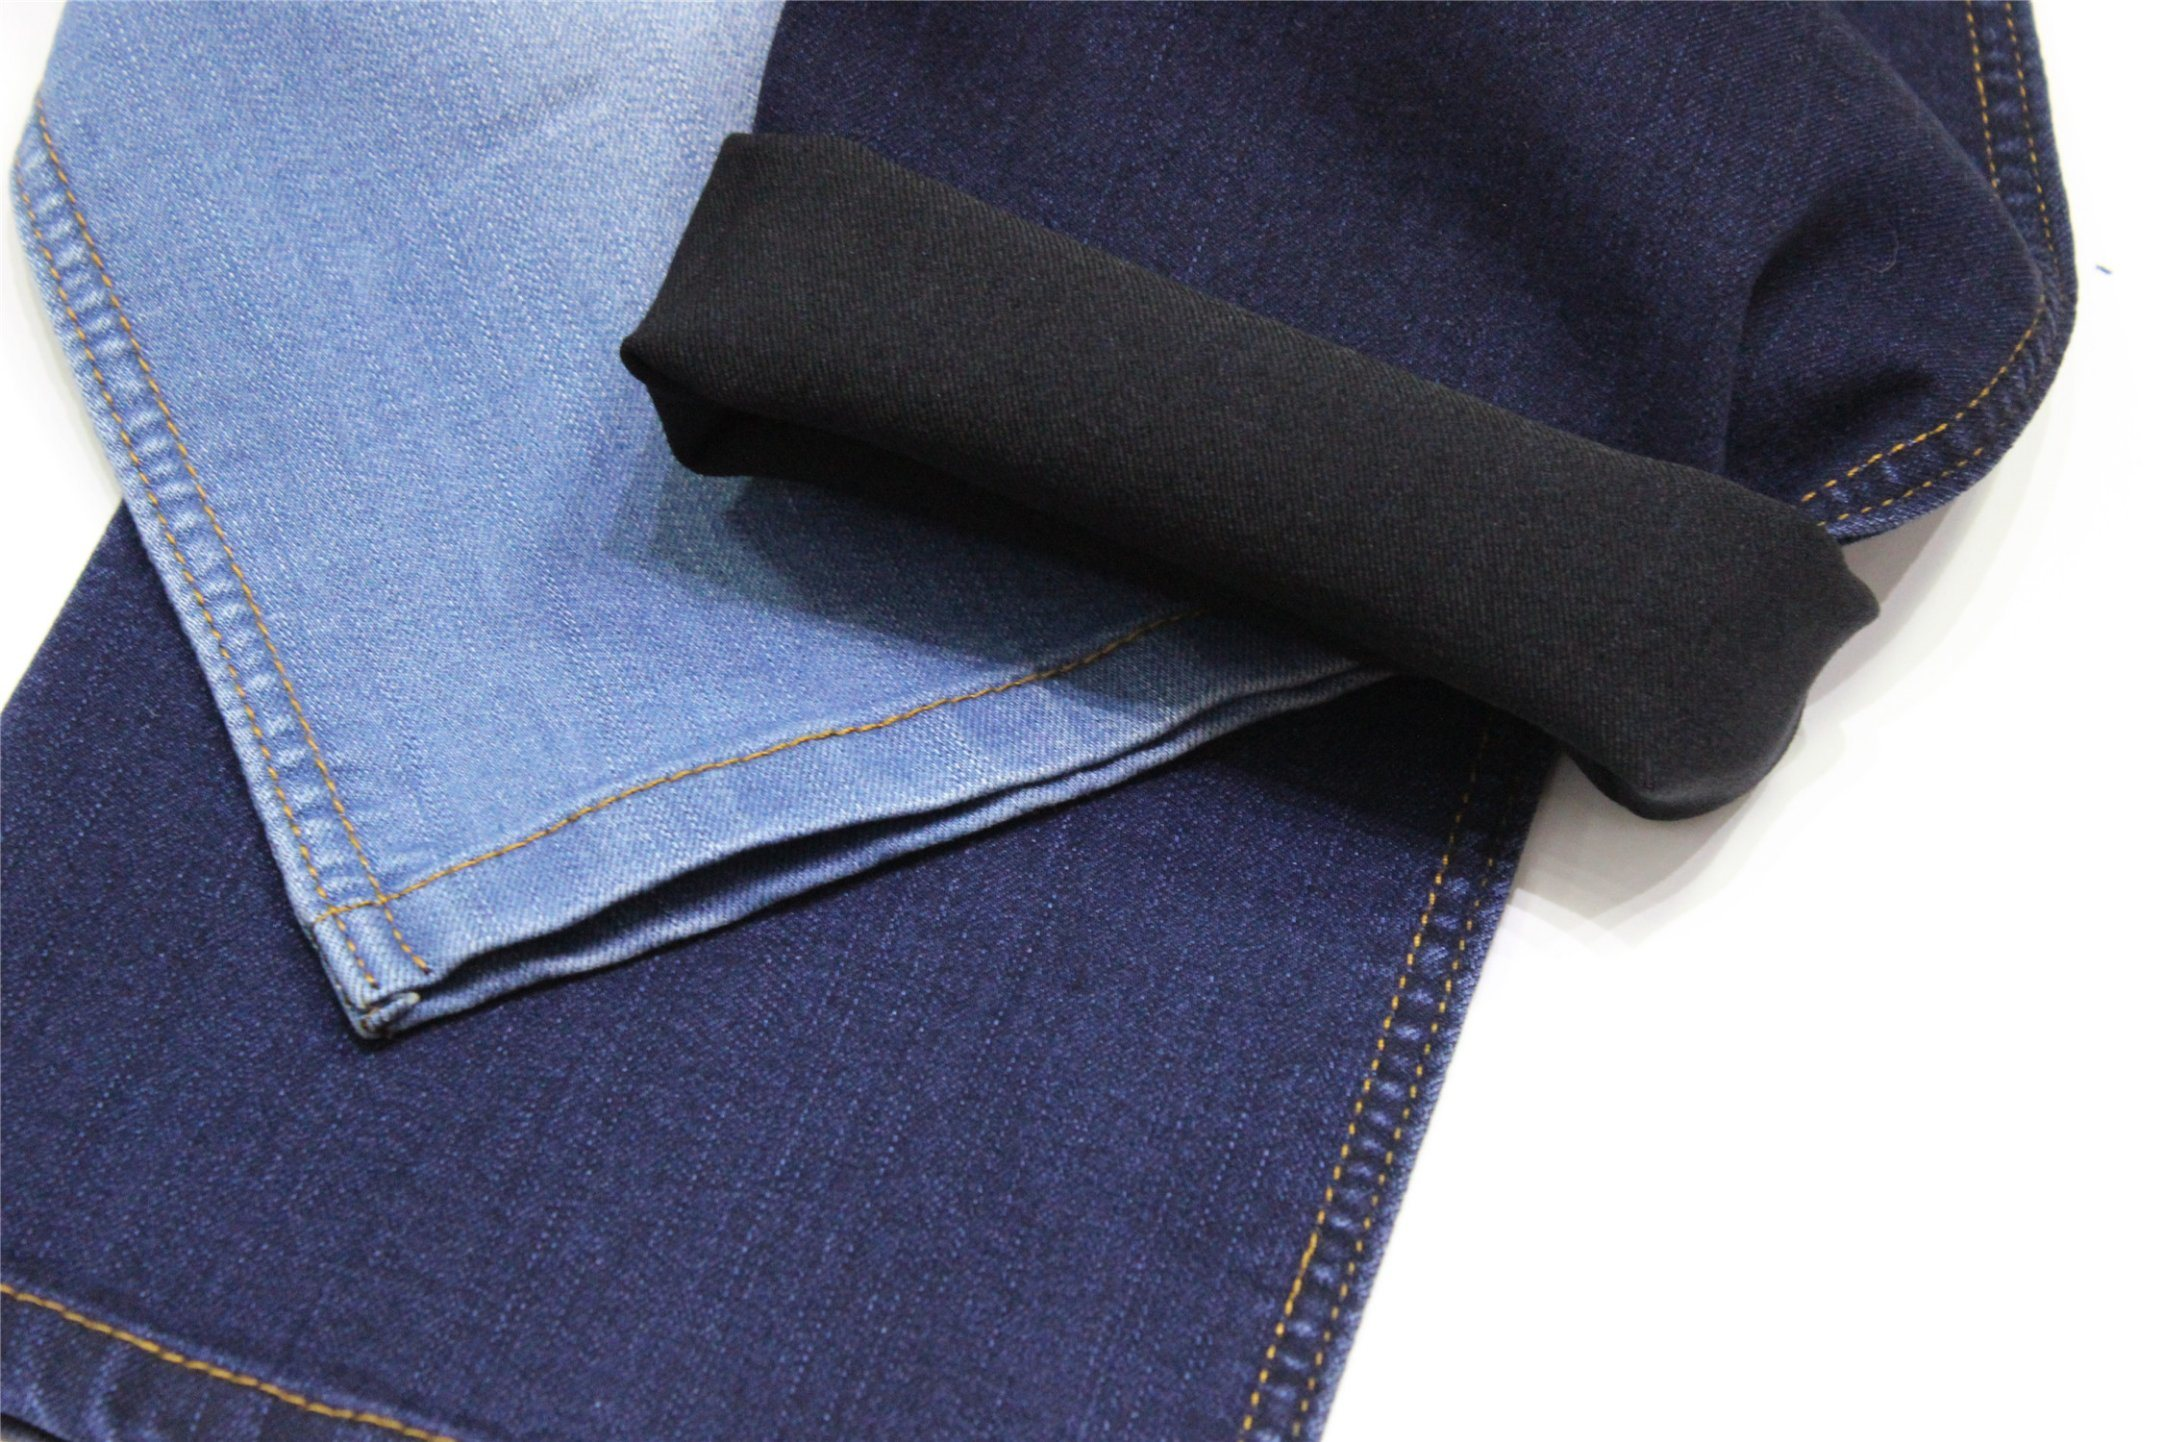 Cotton Polyester Rayon Spandex Indigo Denim